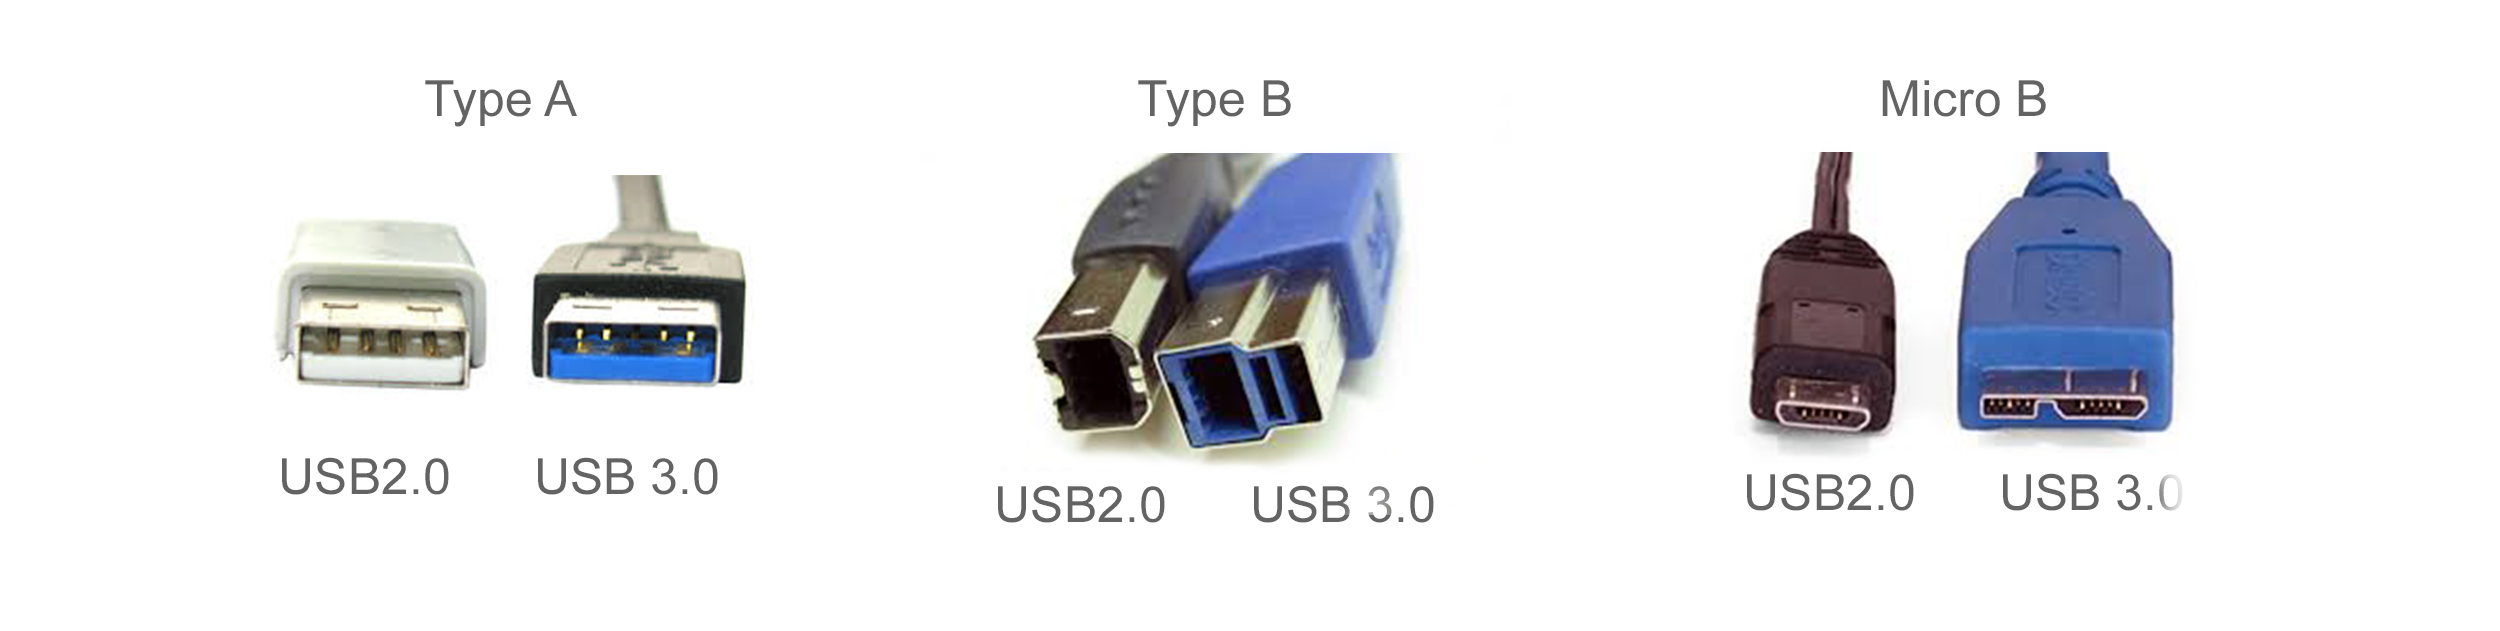 USB 2 versus USB 3 Connectors